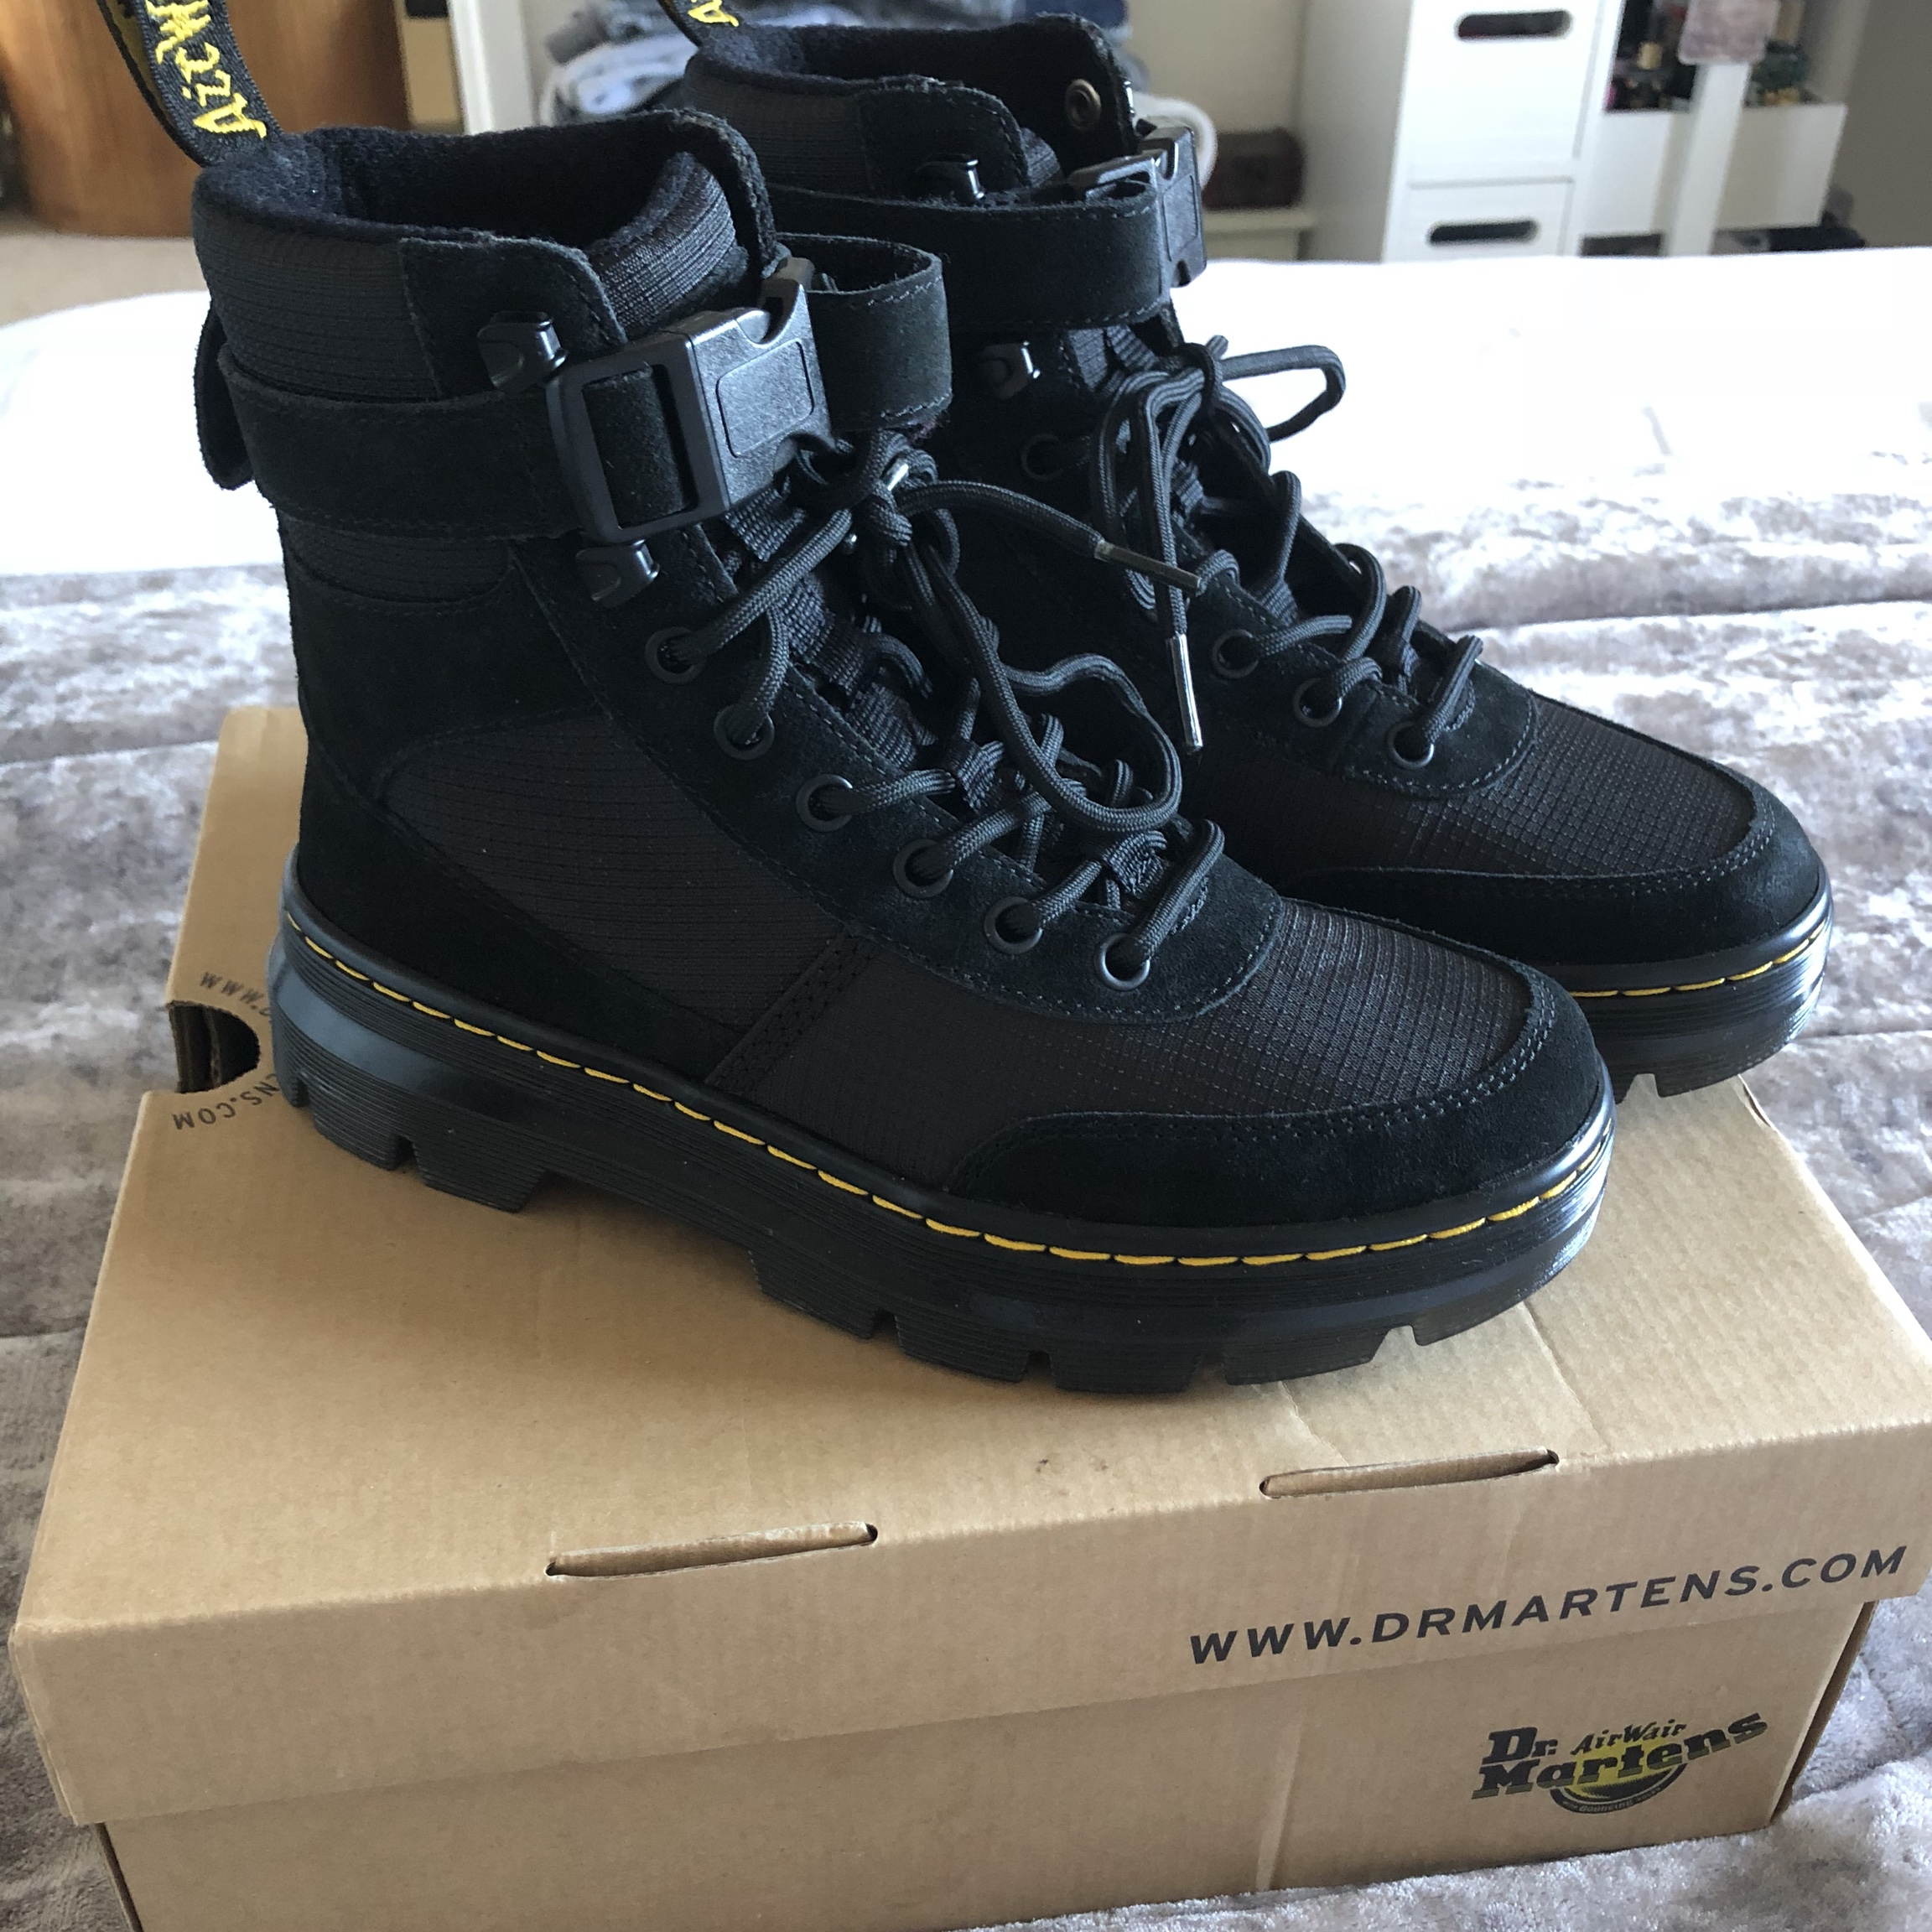 04463c7c346 Dr Martens COMBS TECH - Lace-up boots Black UK 3/36... - Depop